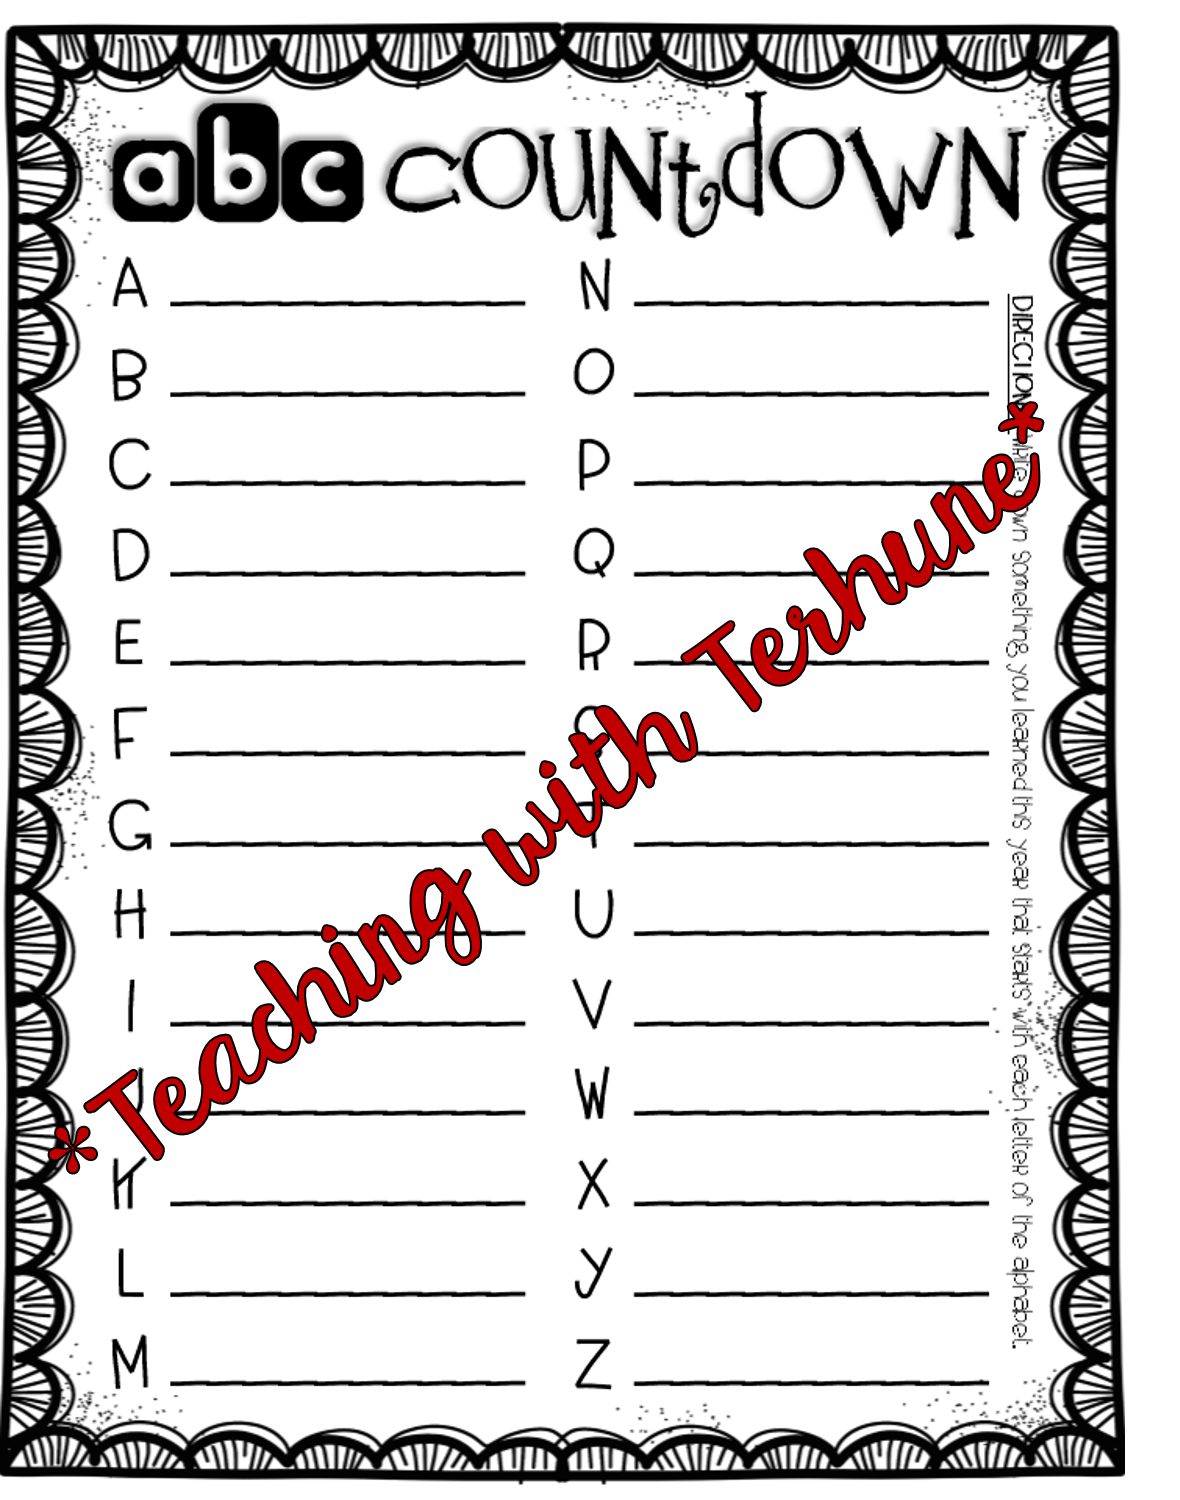 Teaching With Terhune End Of The School Year Activities